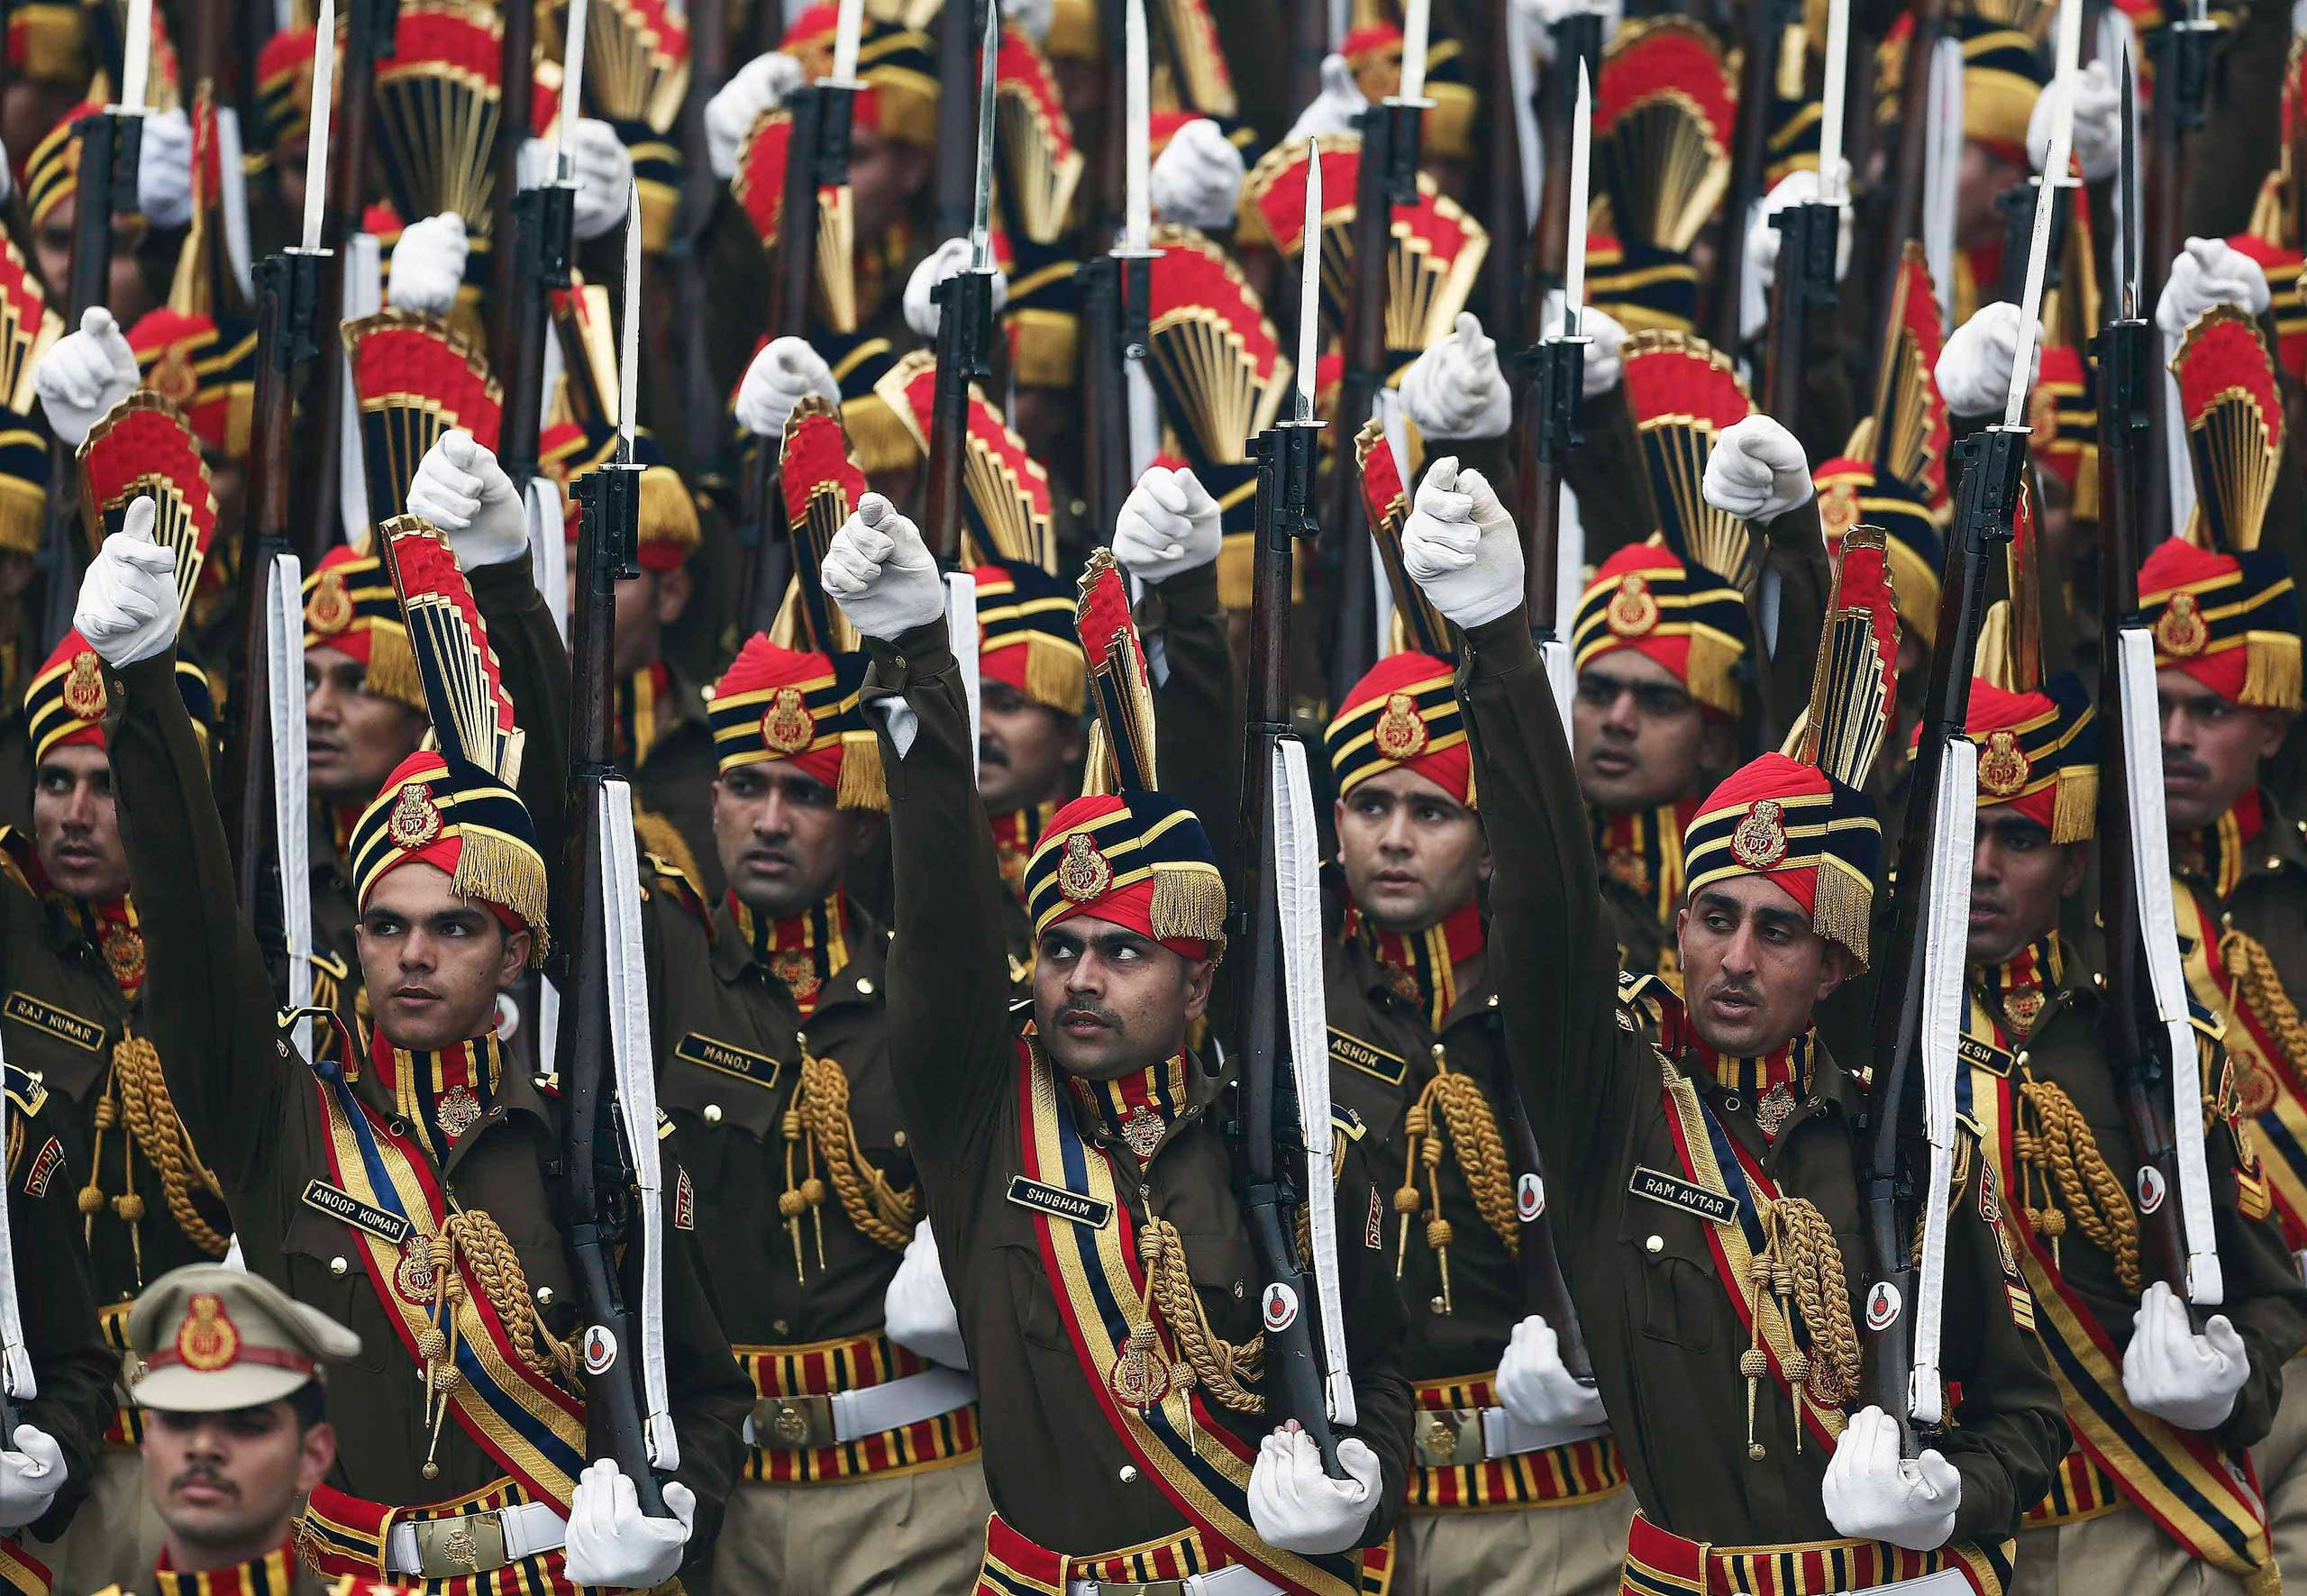 Policemen march during the Republic Day parade in New Delhi, Jan. 26, 2015.